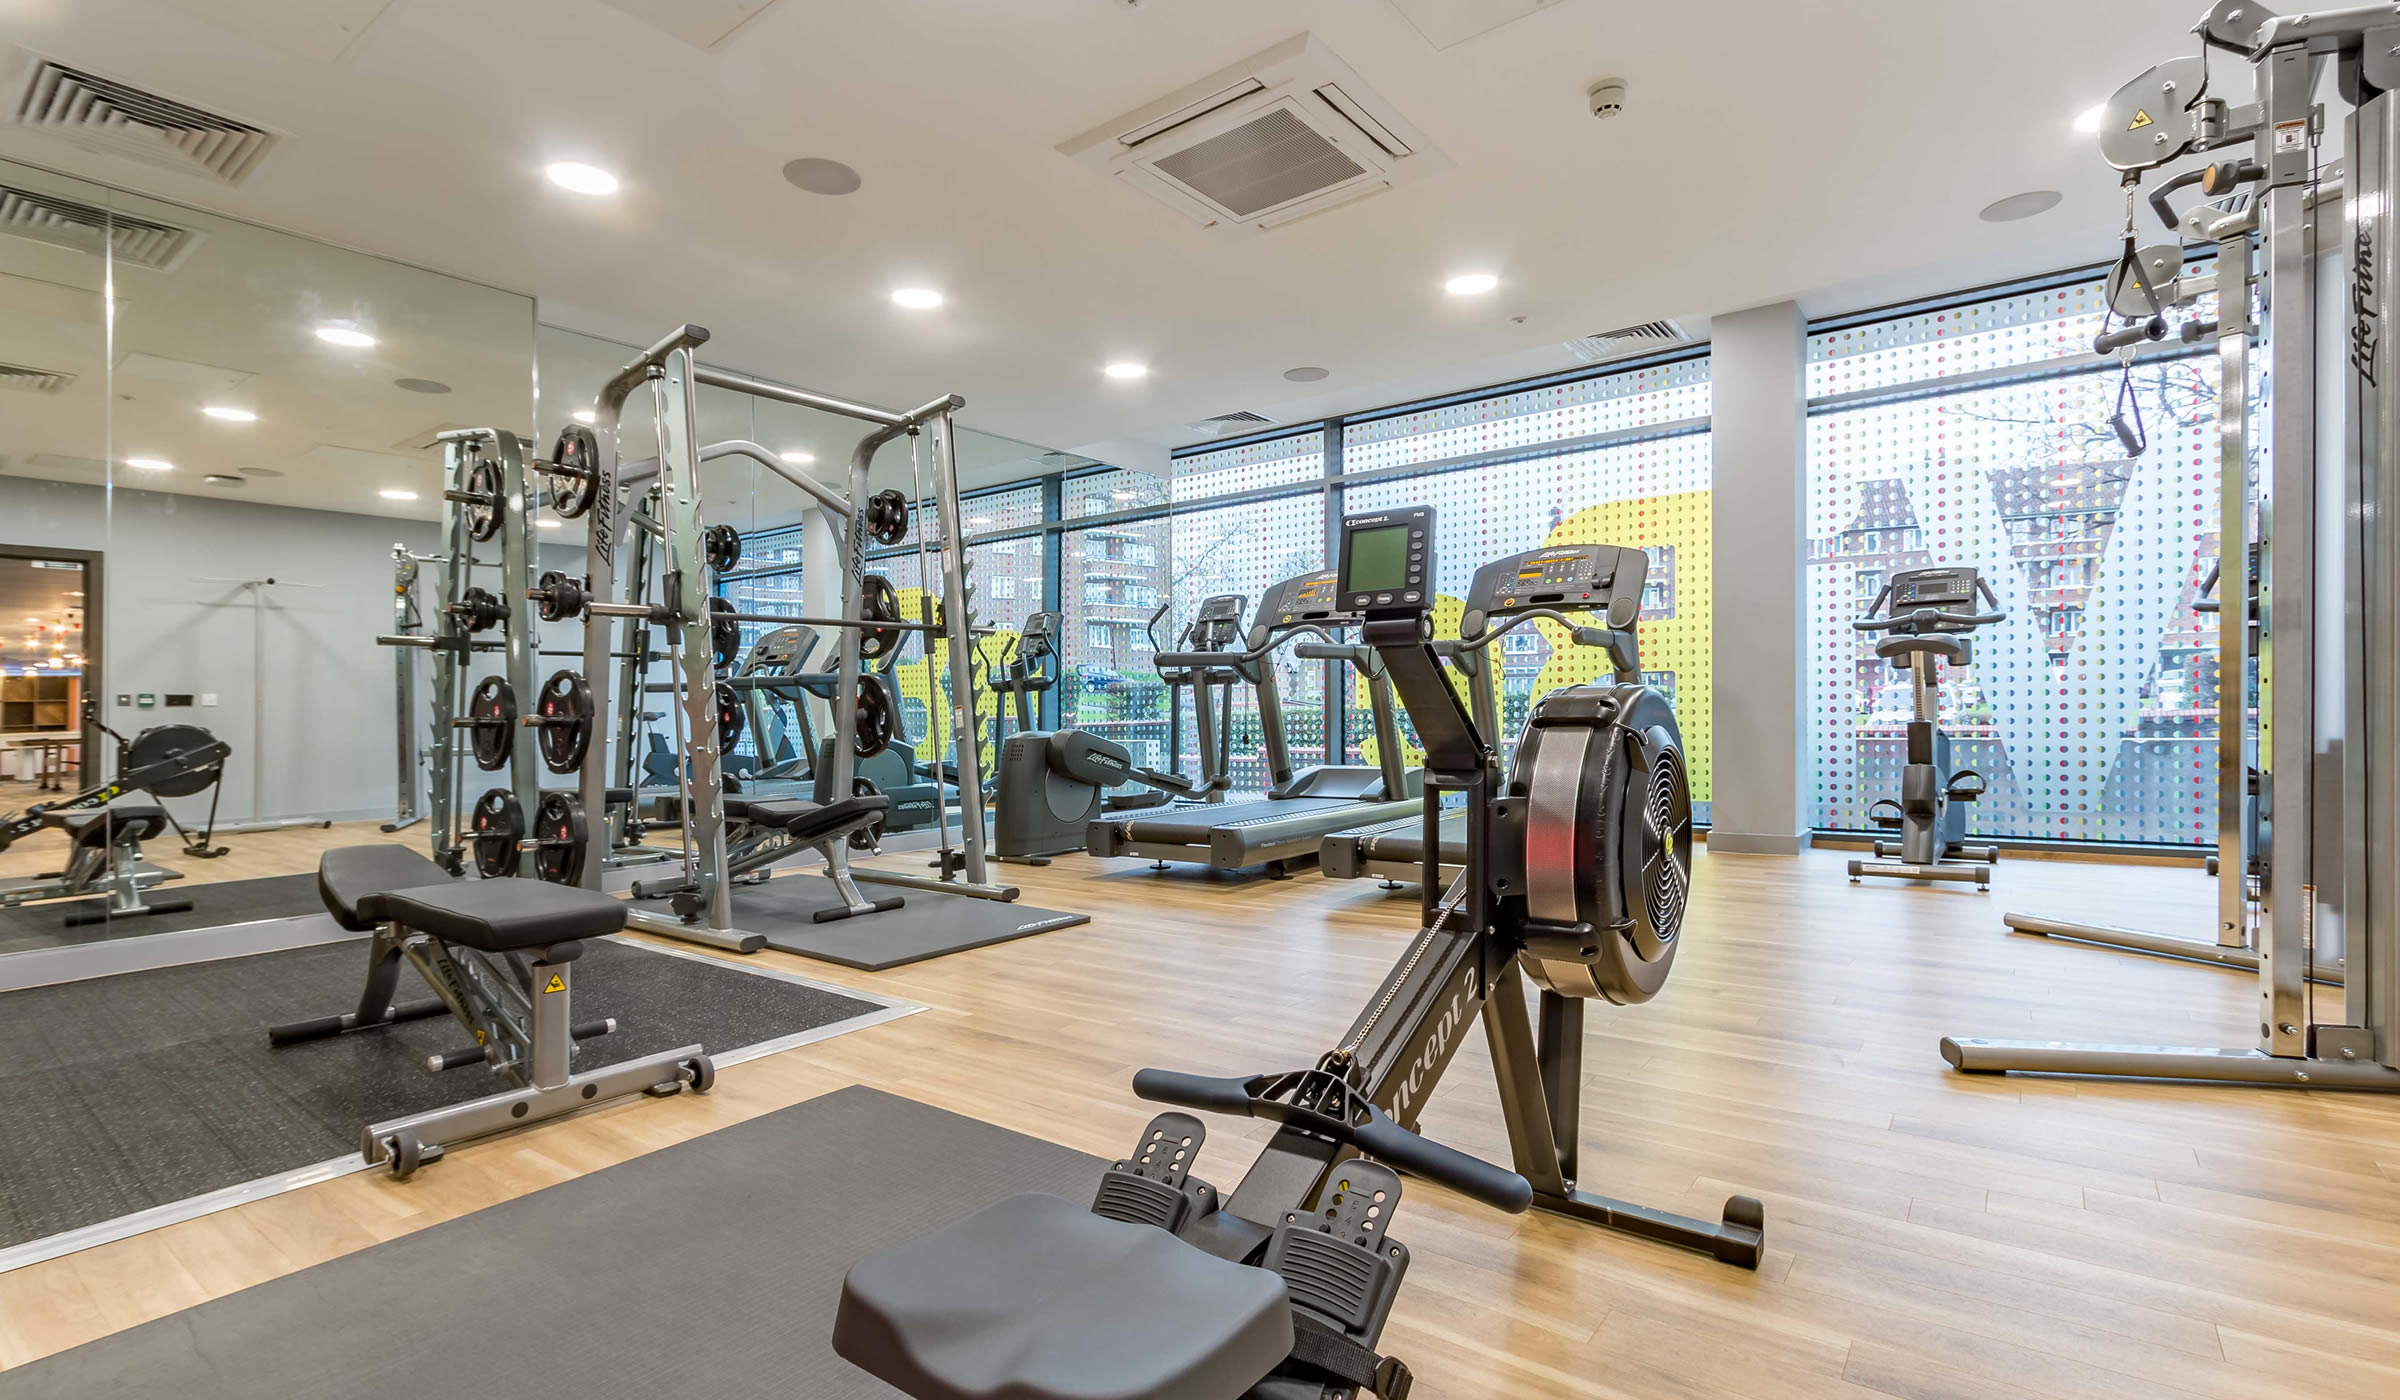 Vibe student accommodation gym